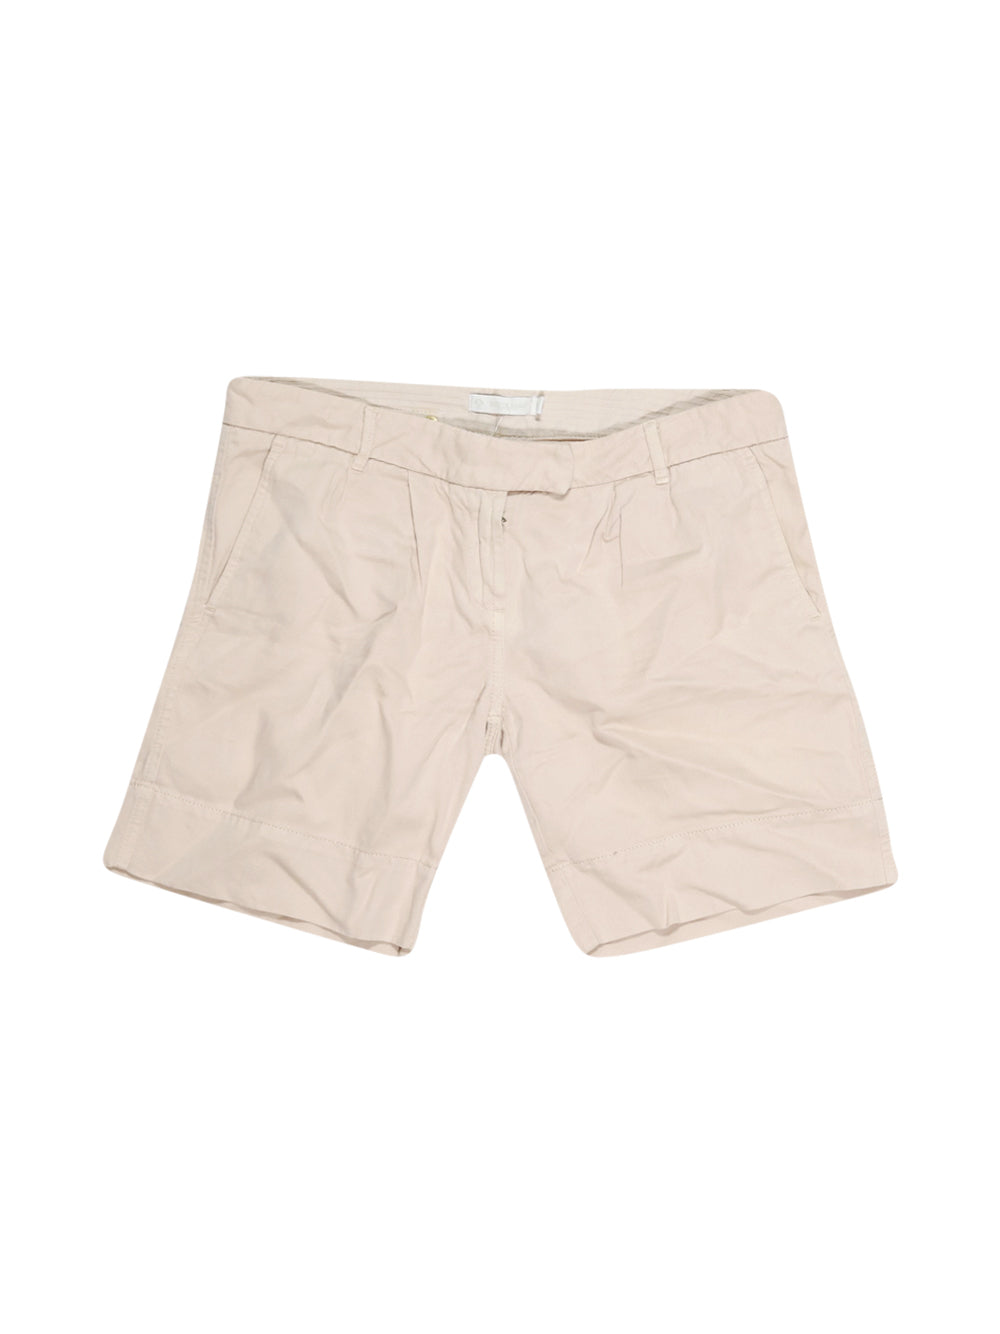 Front photo of Preloved North Sails Beige Woman's shorts - size 14/XL